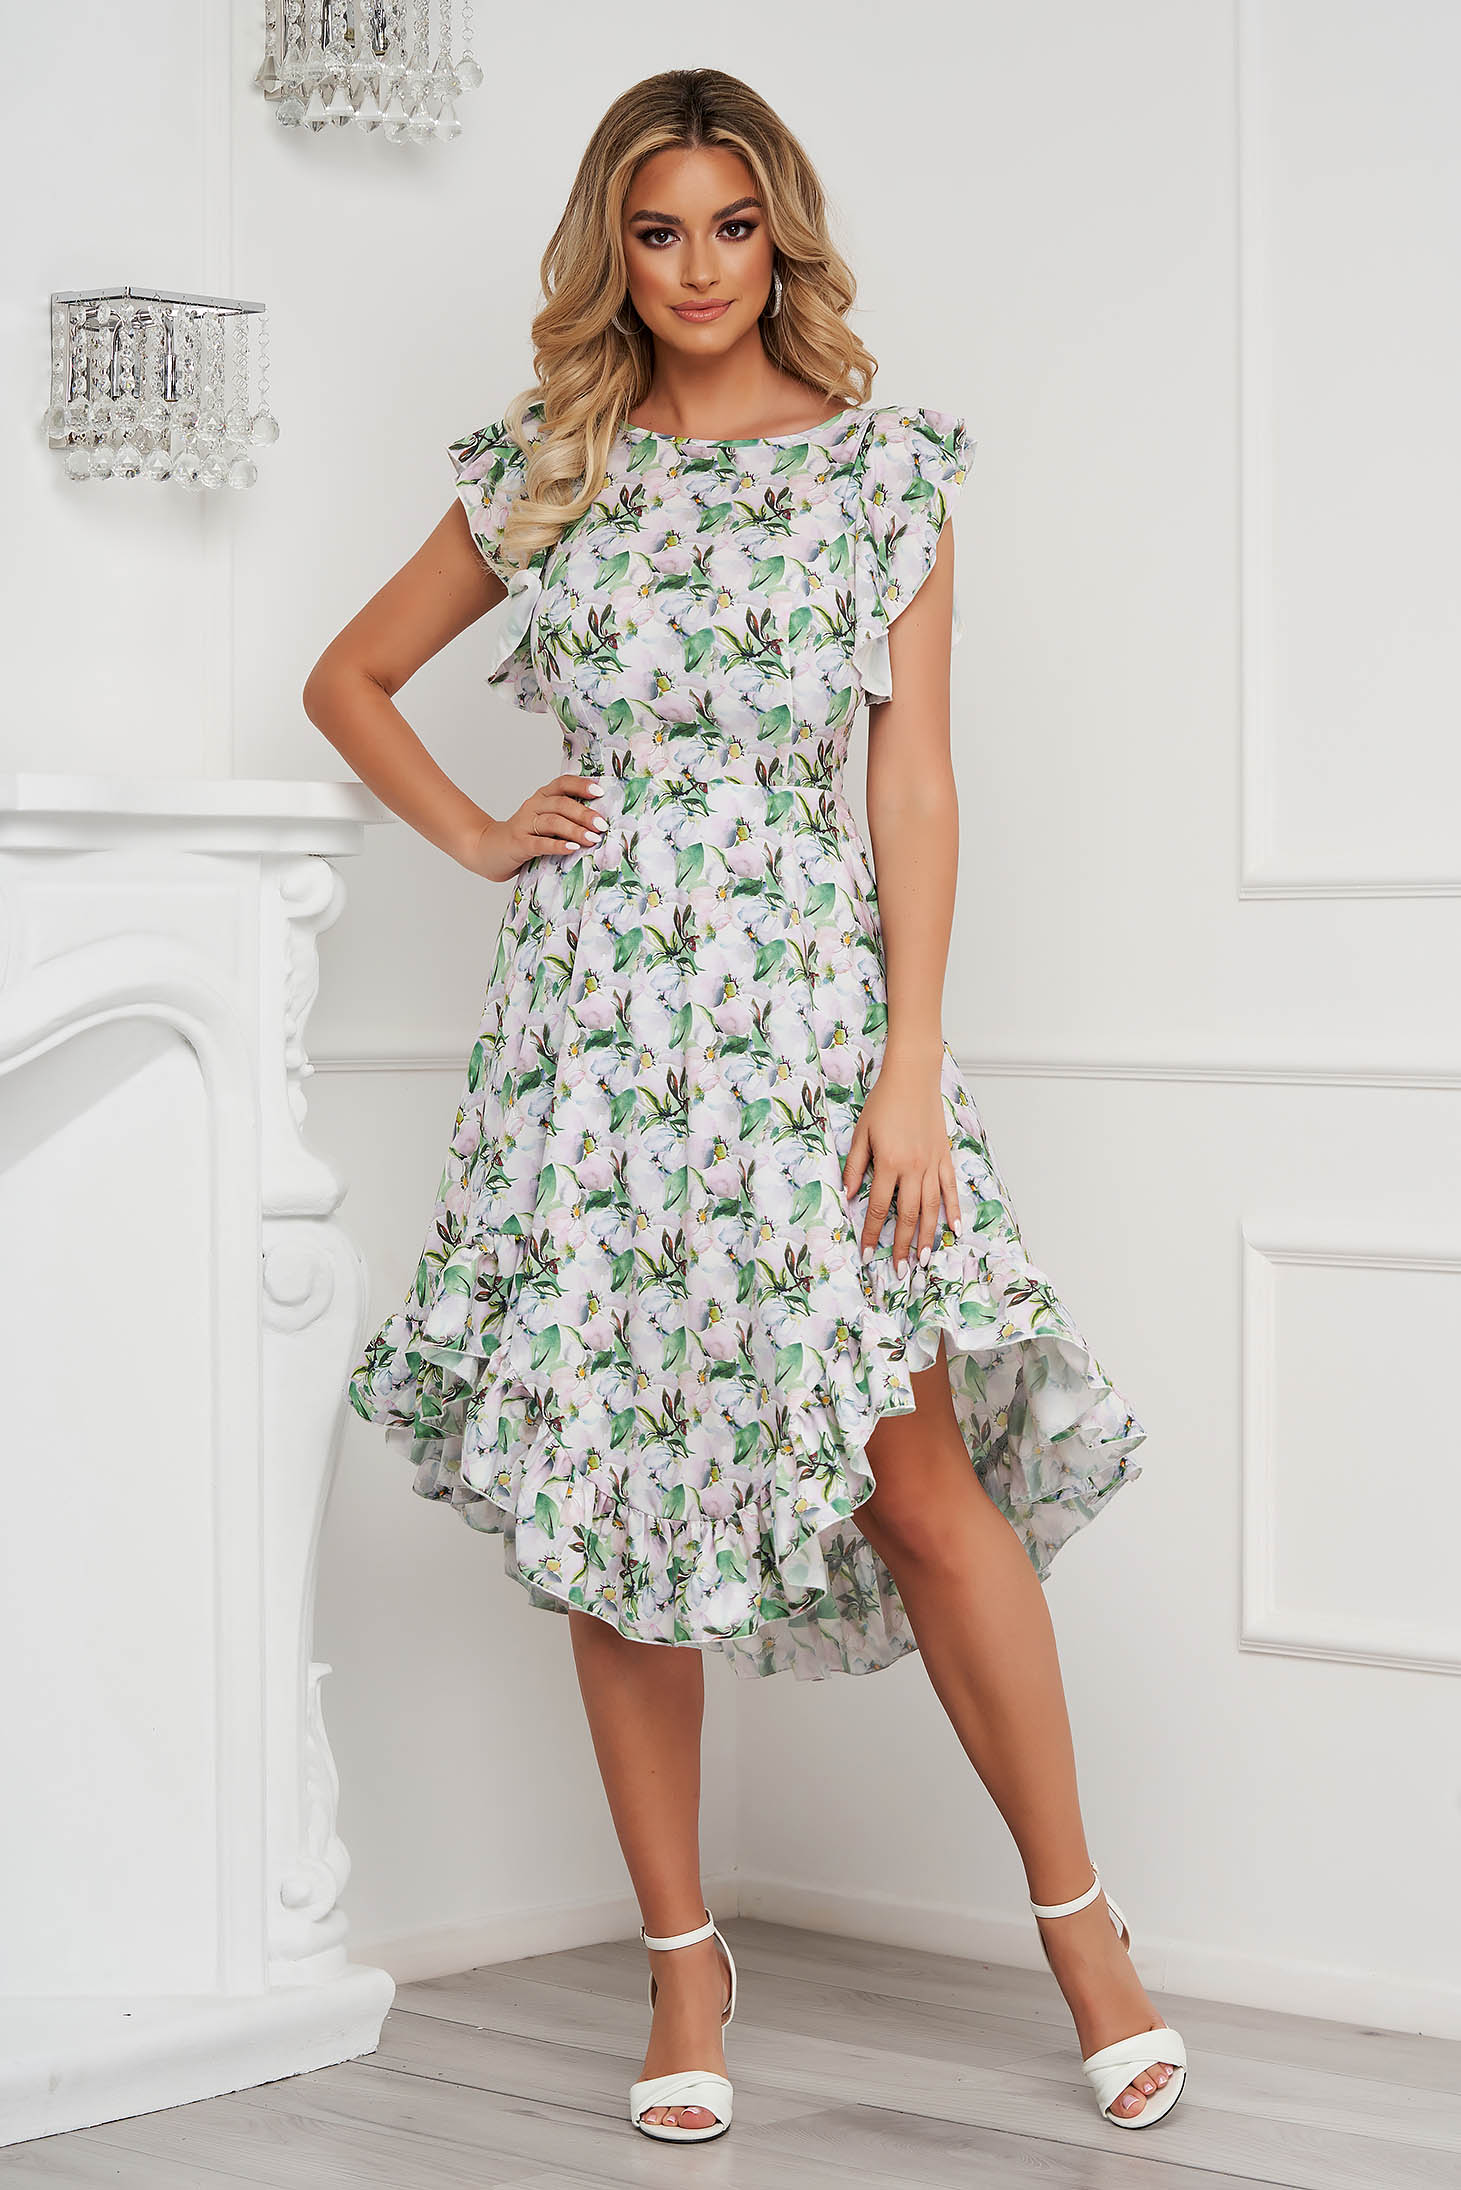 StarShinerS dress elegant midi cloche with ruffle details from soft fabric